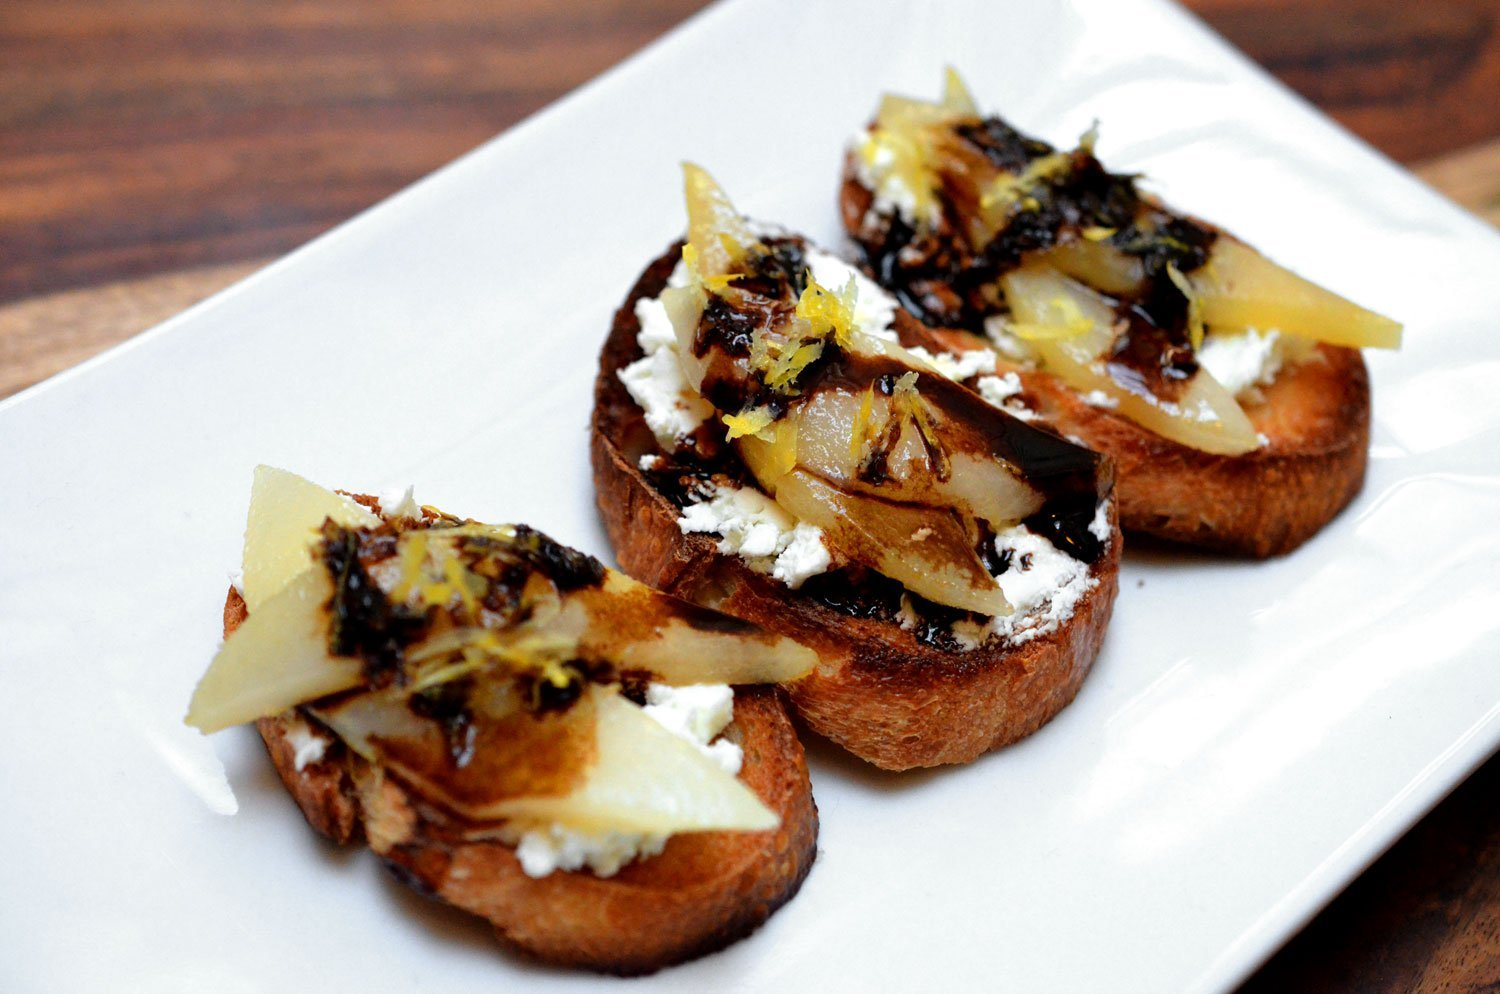 Goat Cheese & Sauteed Pear Crostini